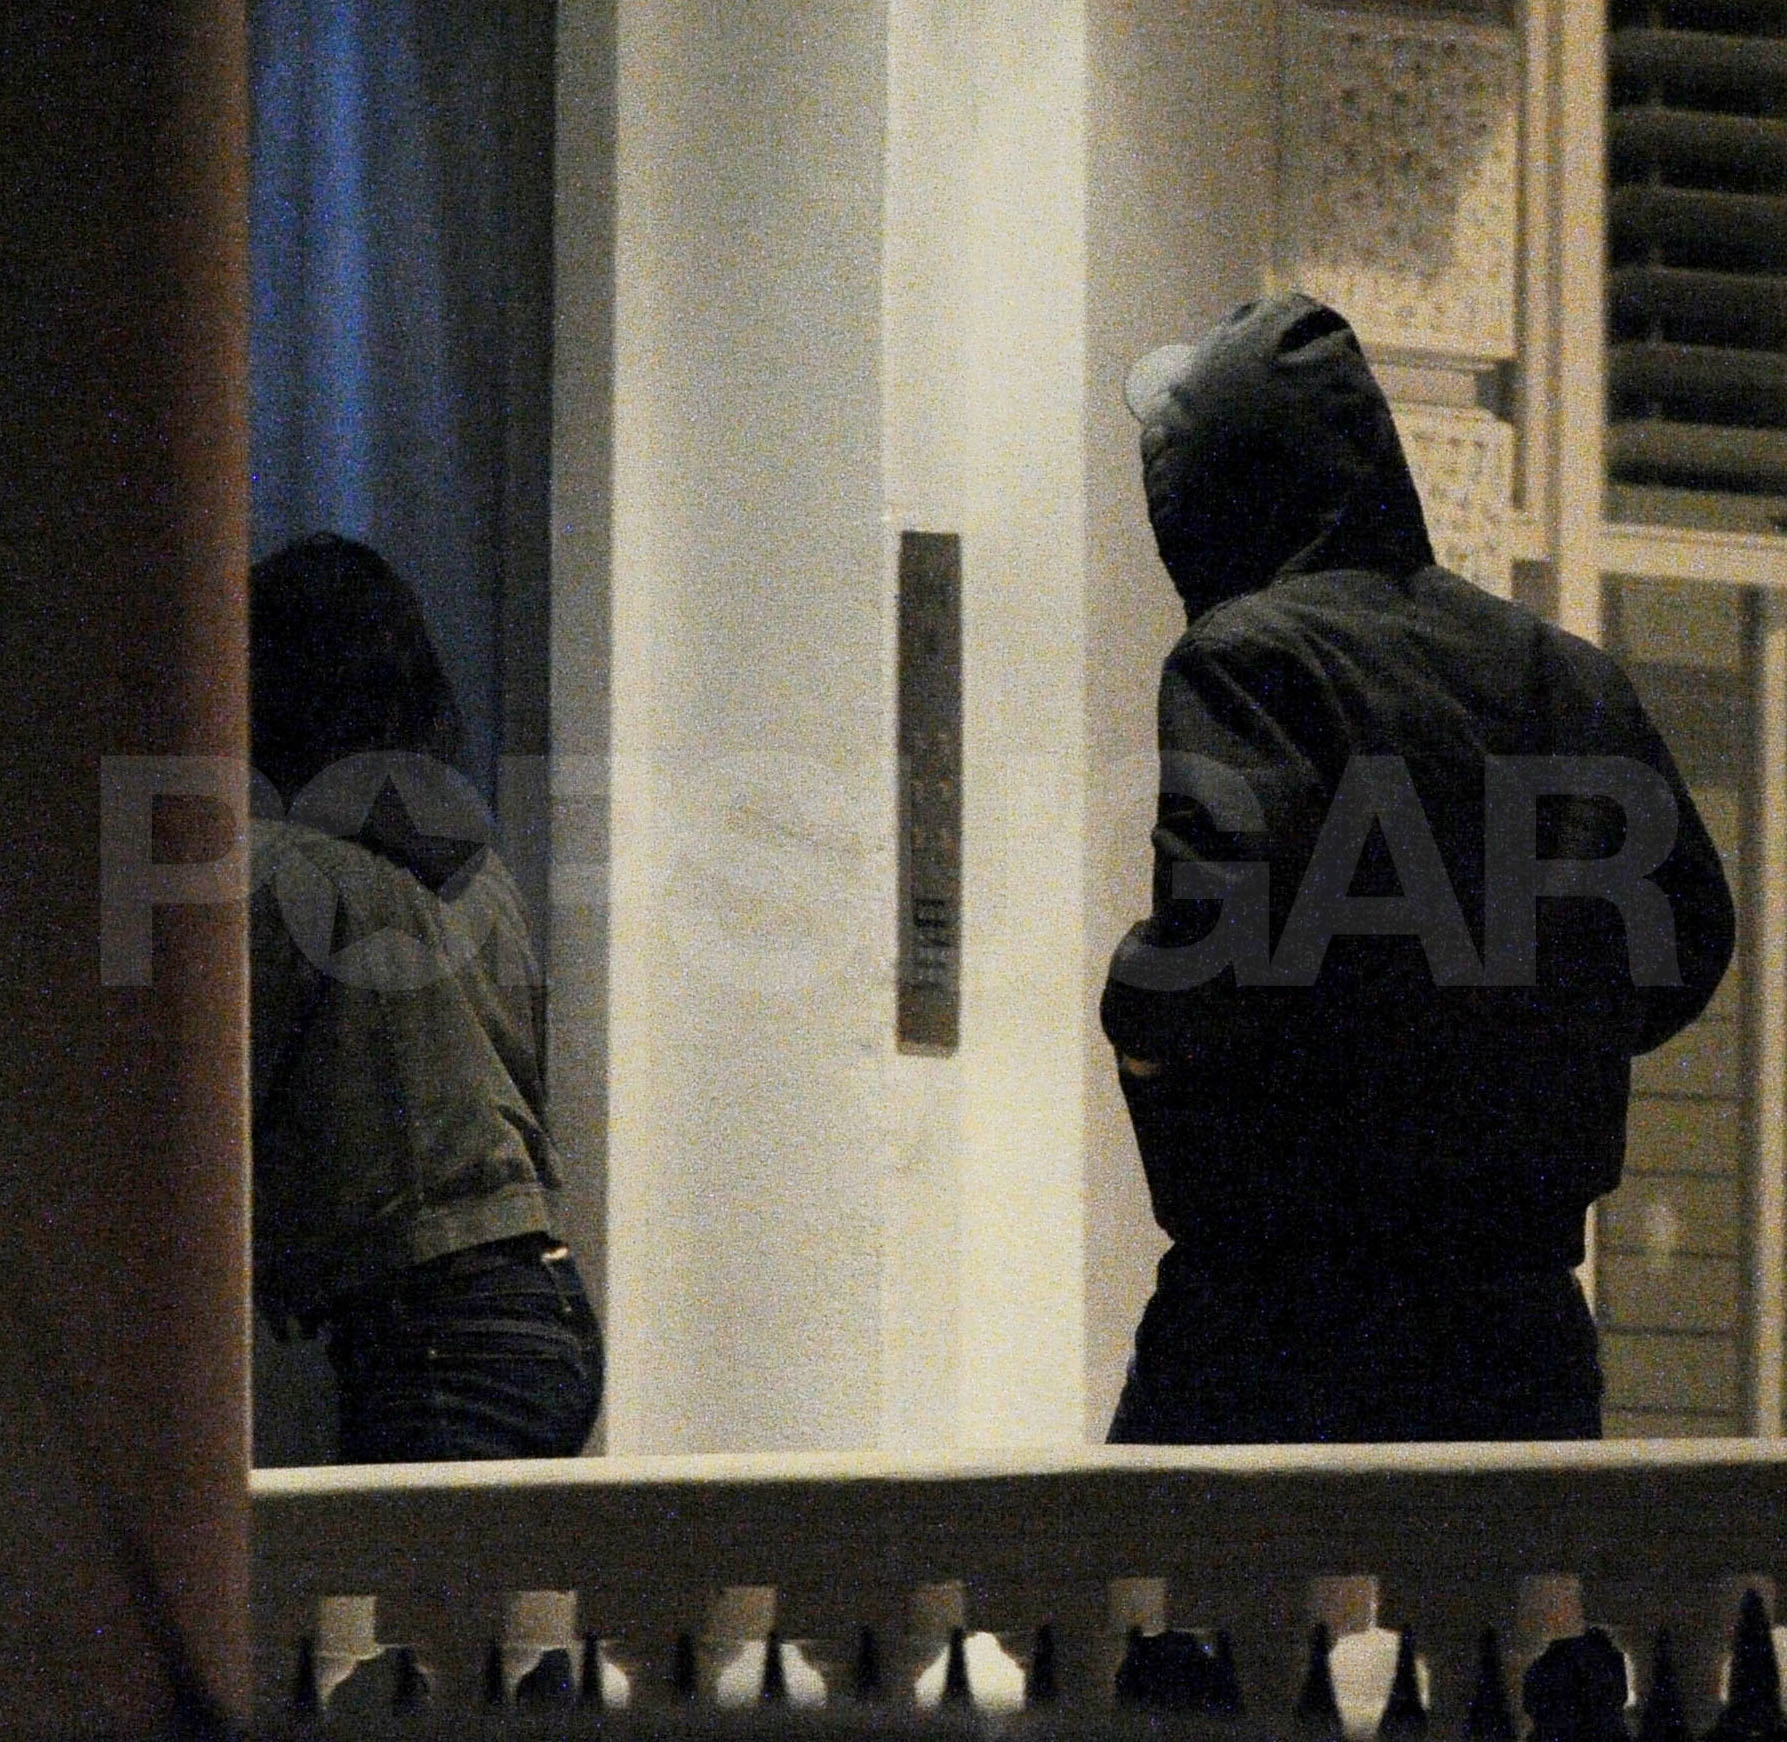 Robert Pattinson and Kristen Stewart returned to their London apartment after dinner.